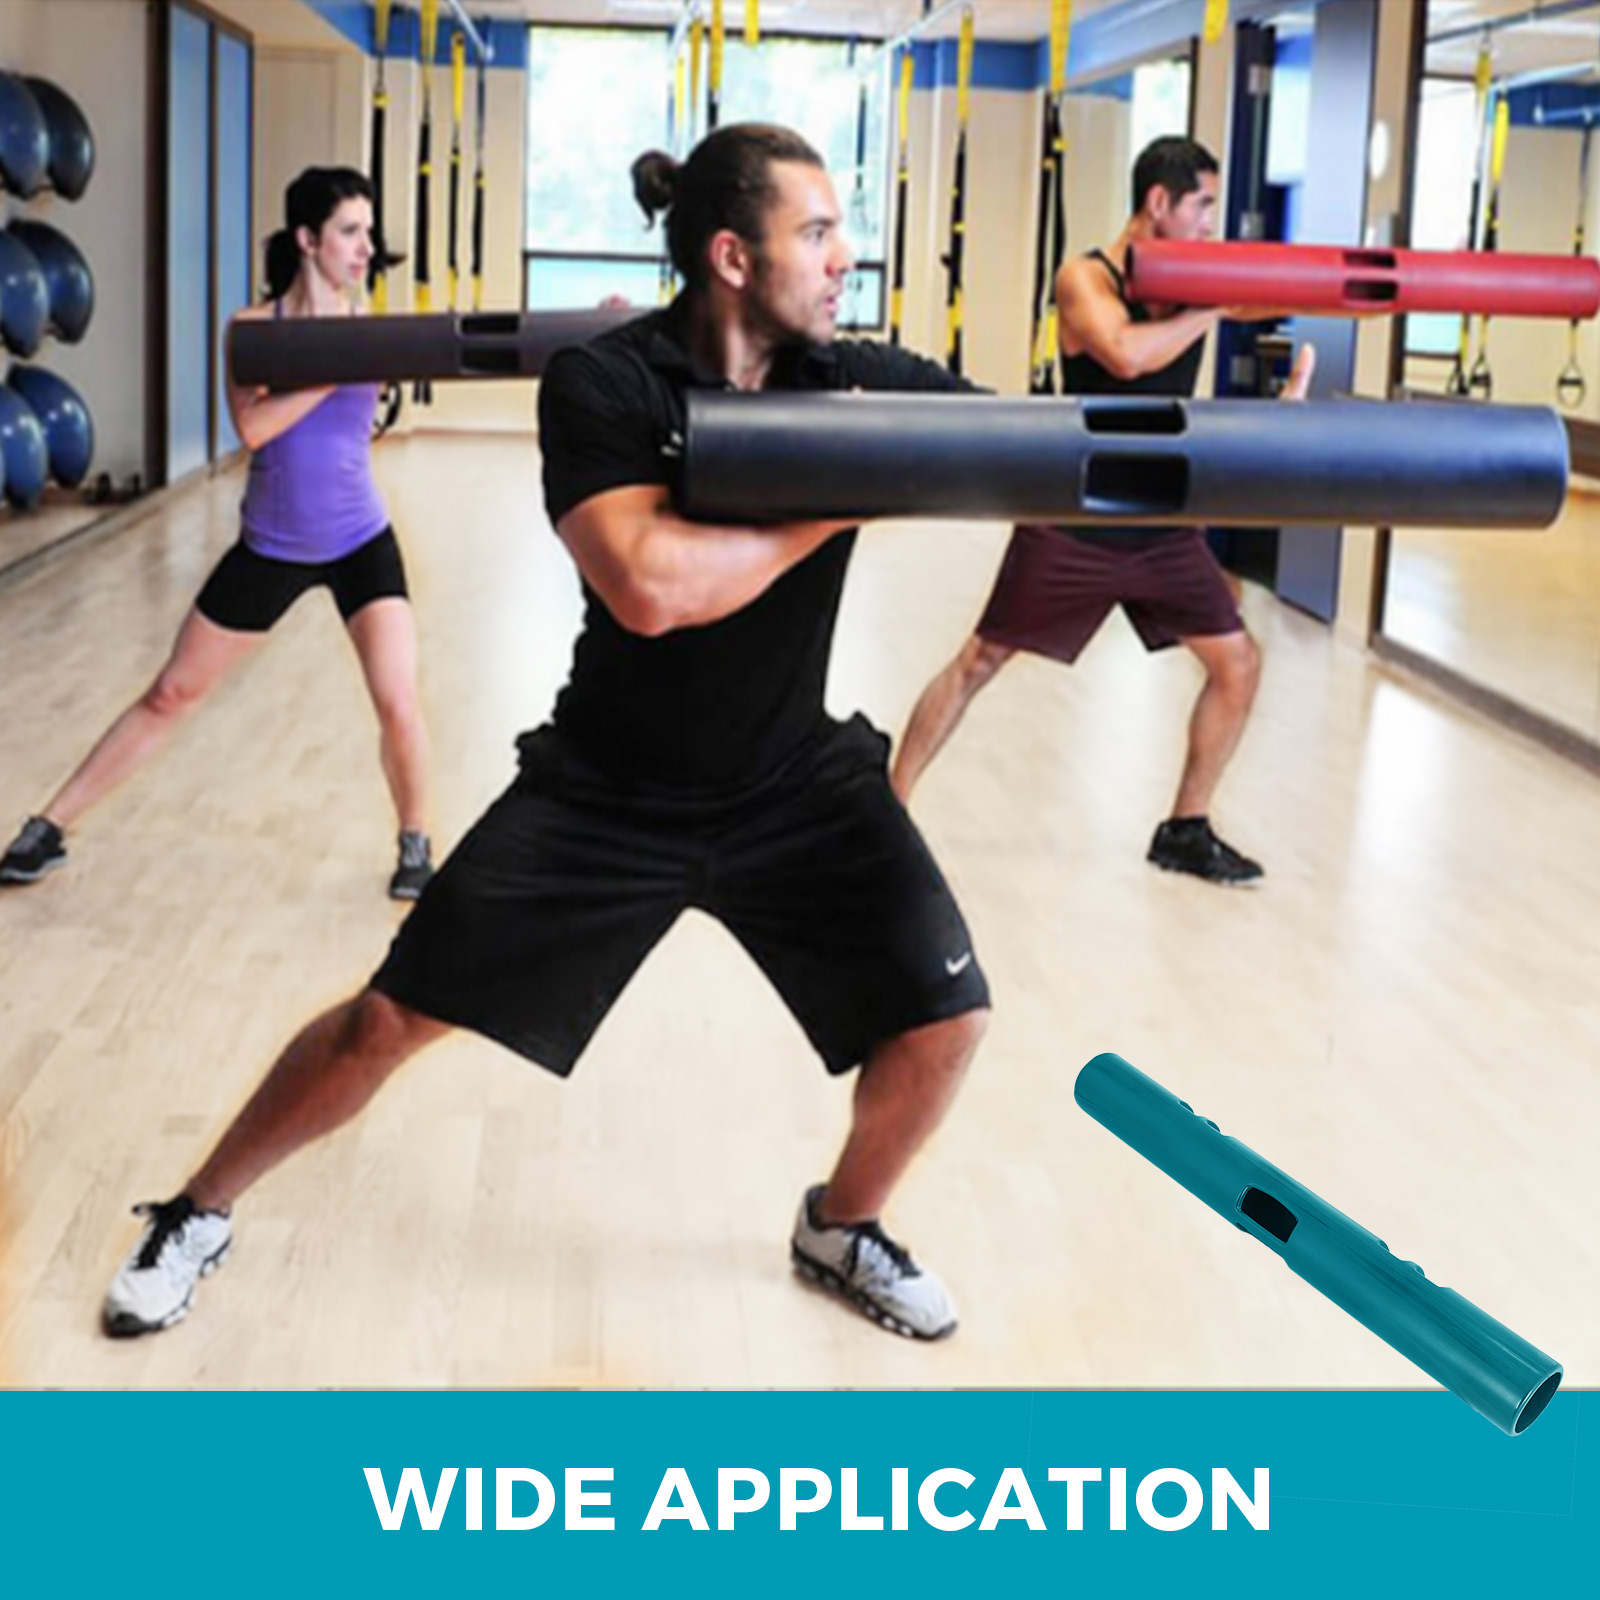 Vipr-Fitpro-Fitness-Tube-Loaded-Movement-Training-weightlifting-4-6-8-10-12-Kg thumbnail 211